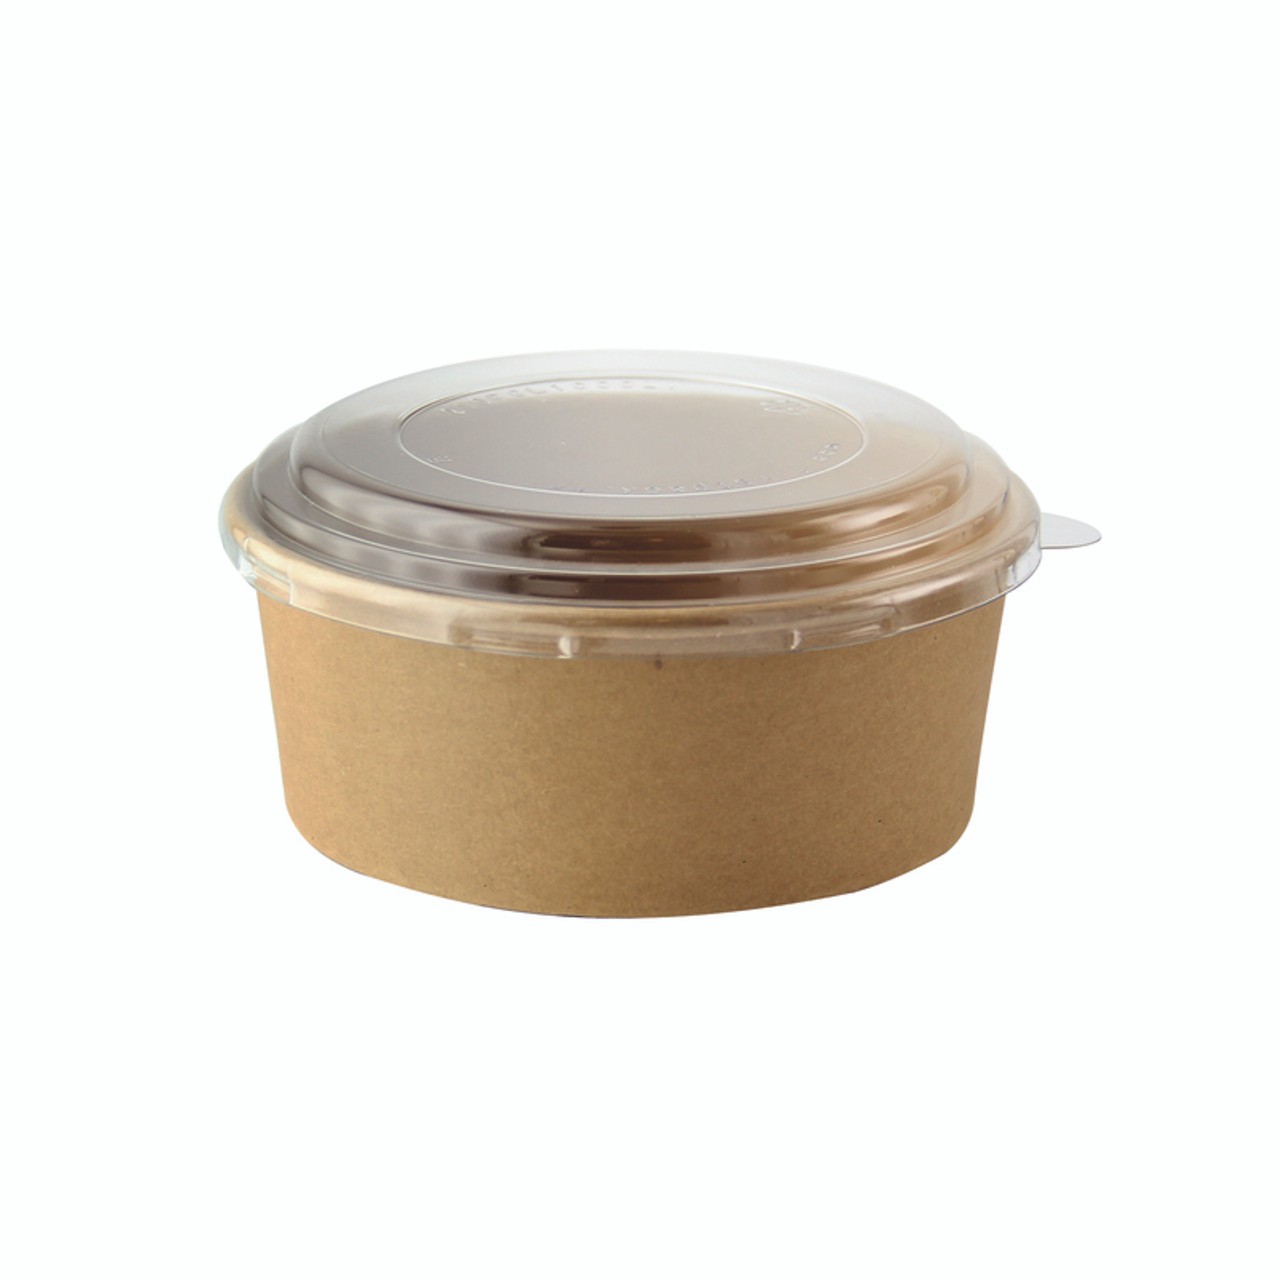 Round Kraft To Go Container -16oz Dia:5.8in H:1.75in